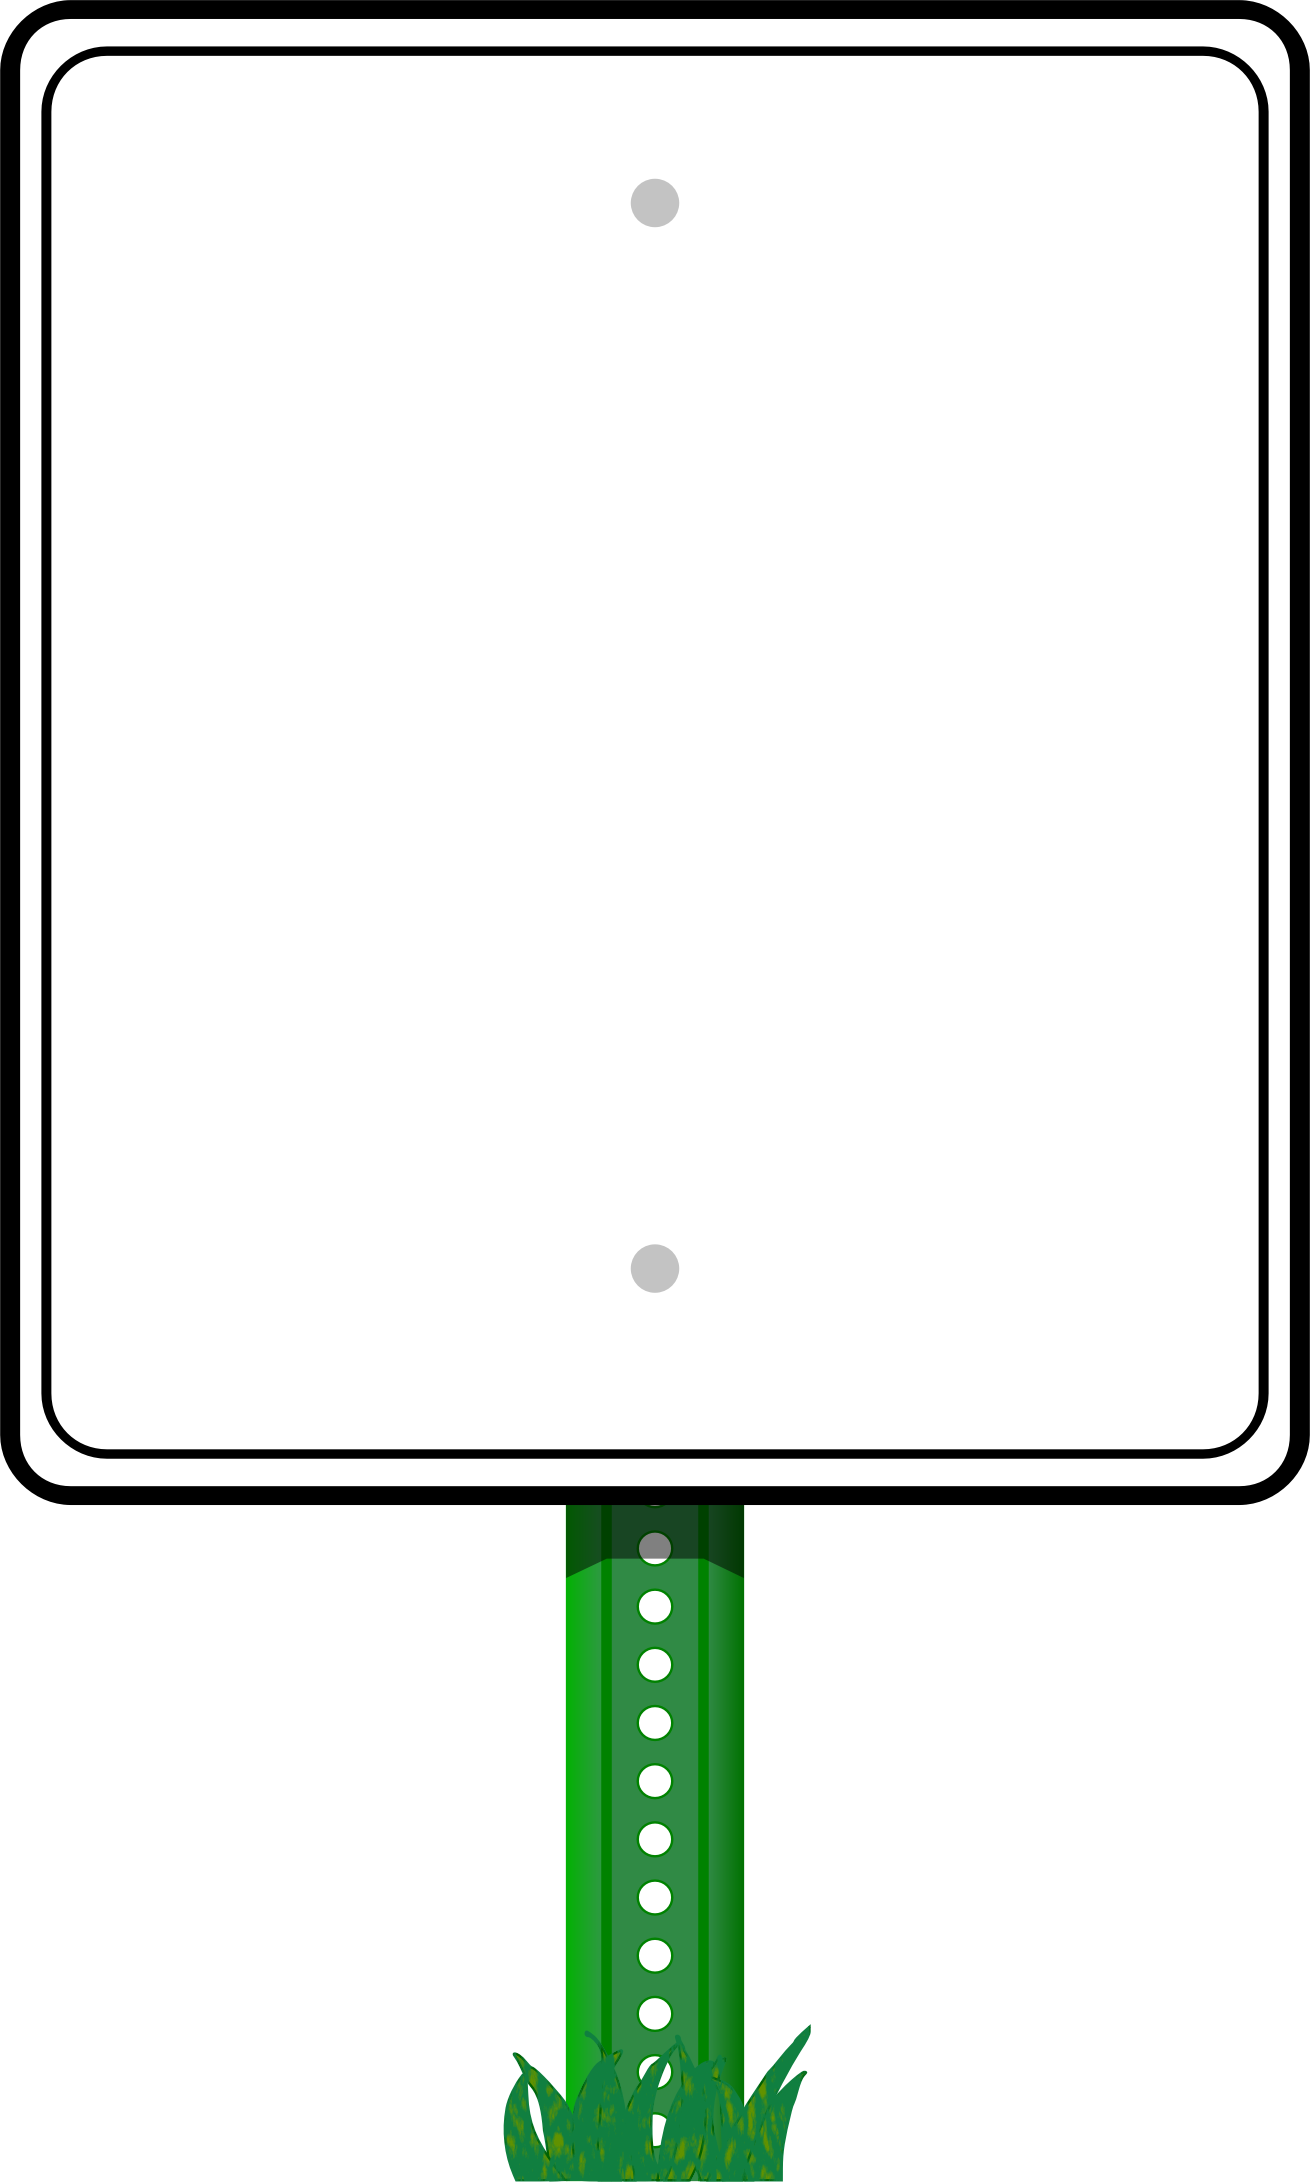 Pathway clipart lane. Road sign border big